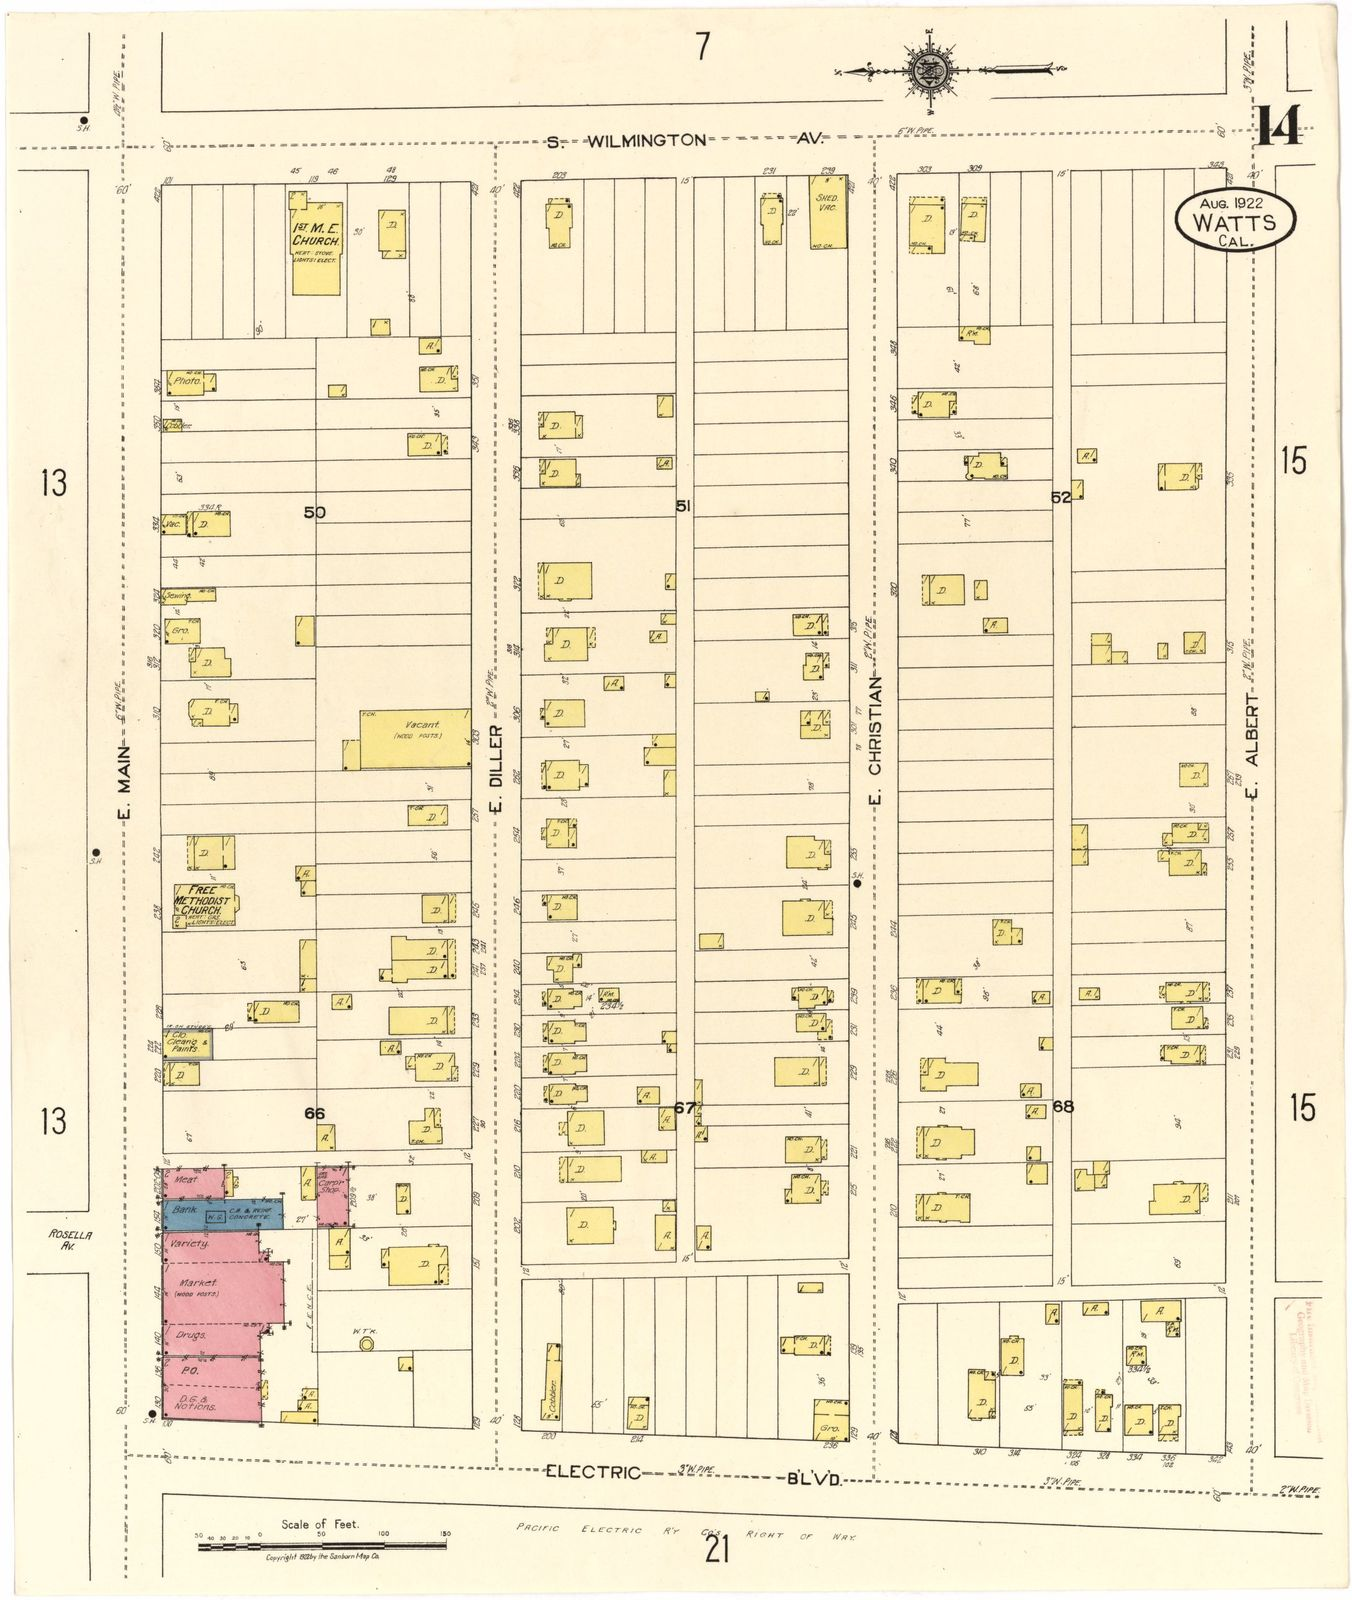 Sanborn Fire Insurance Map from Watts, Los Angeles County, California.